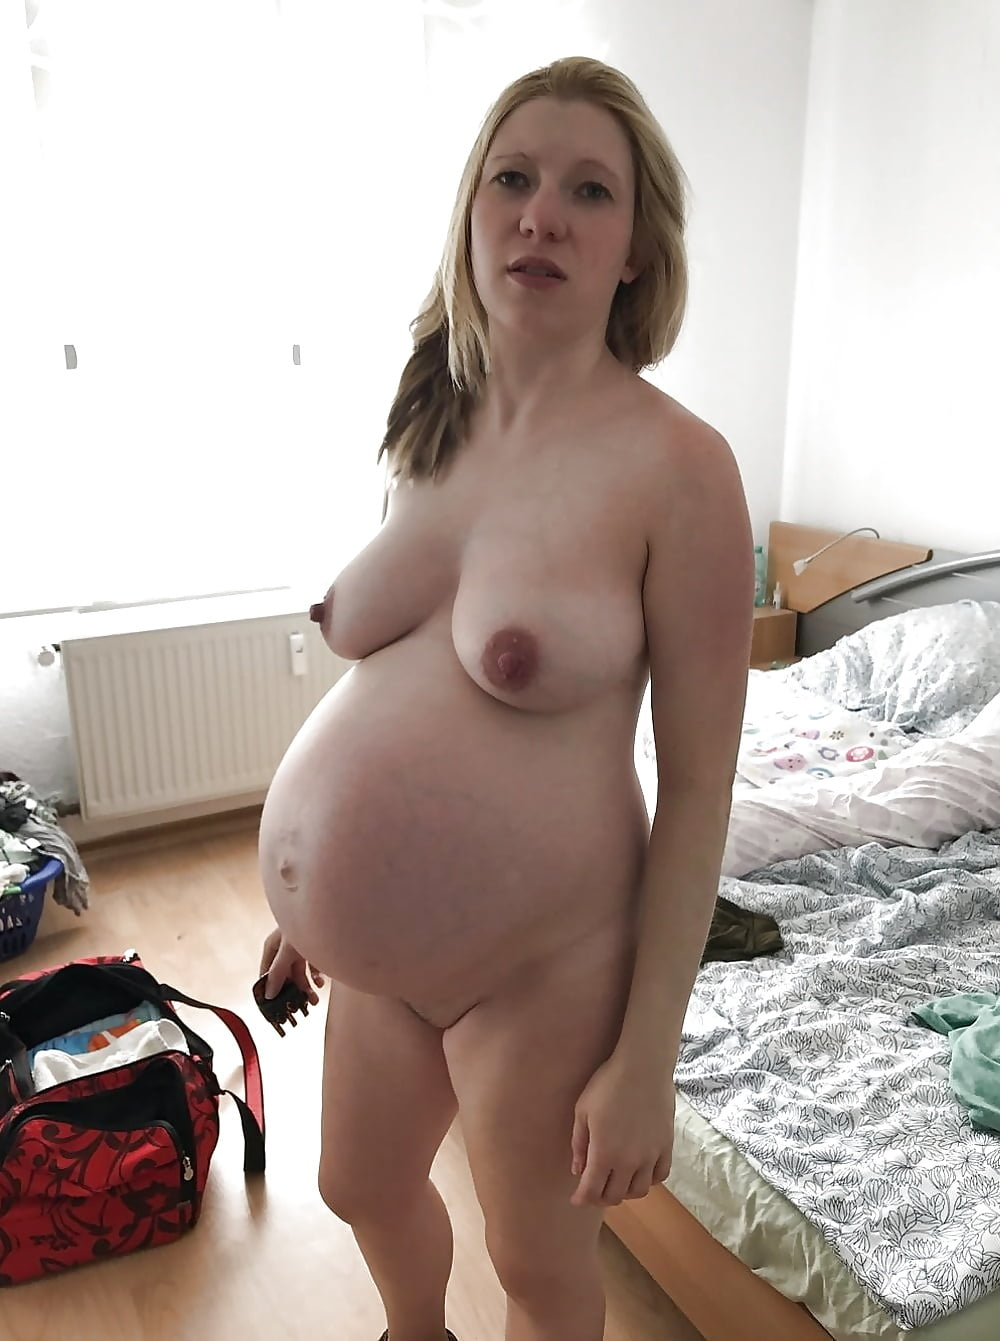 Anal close naked pregnant girls in college